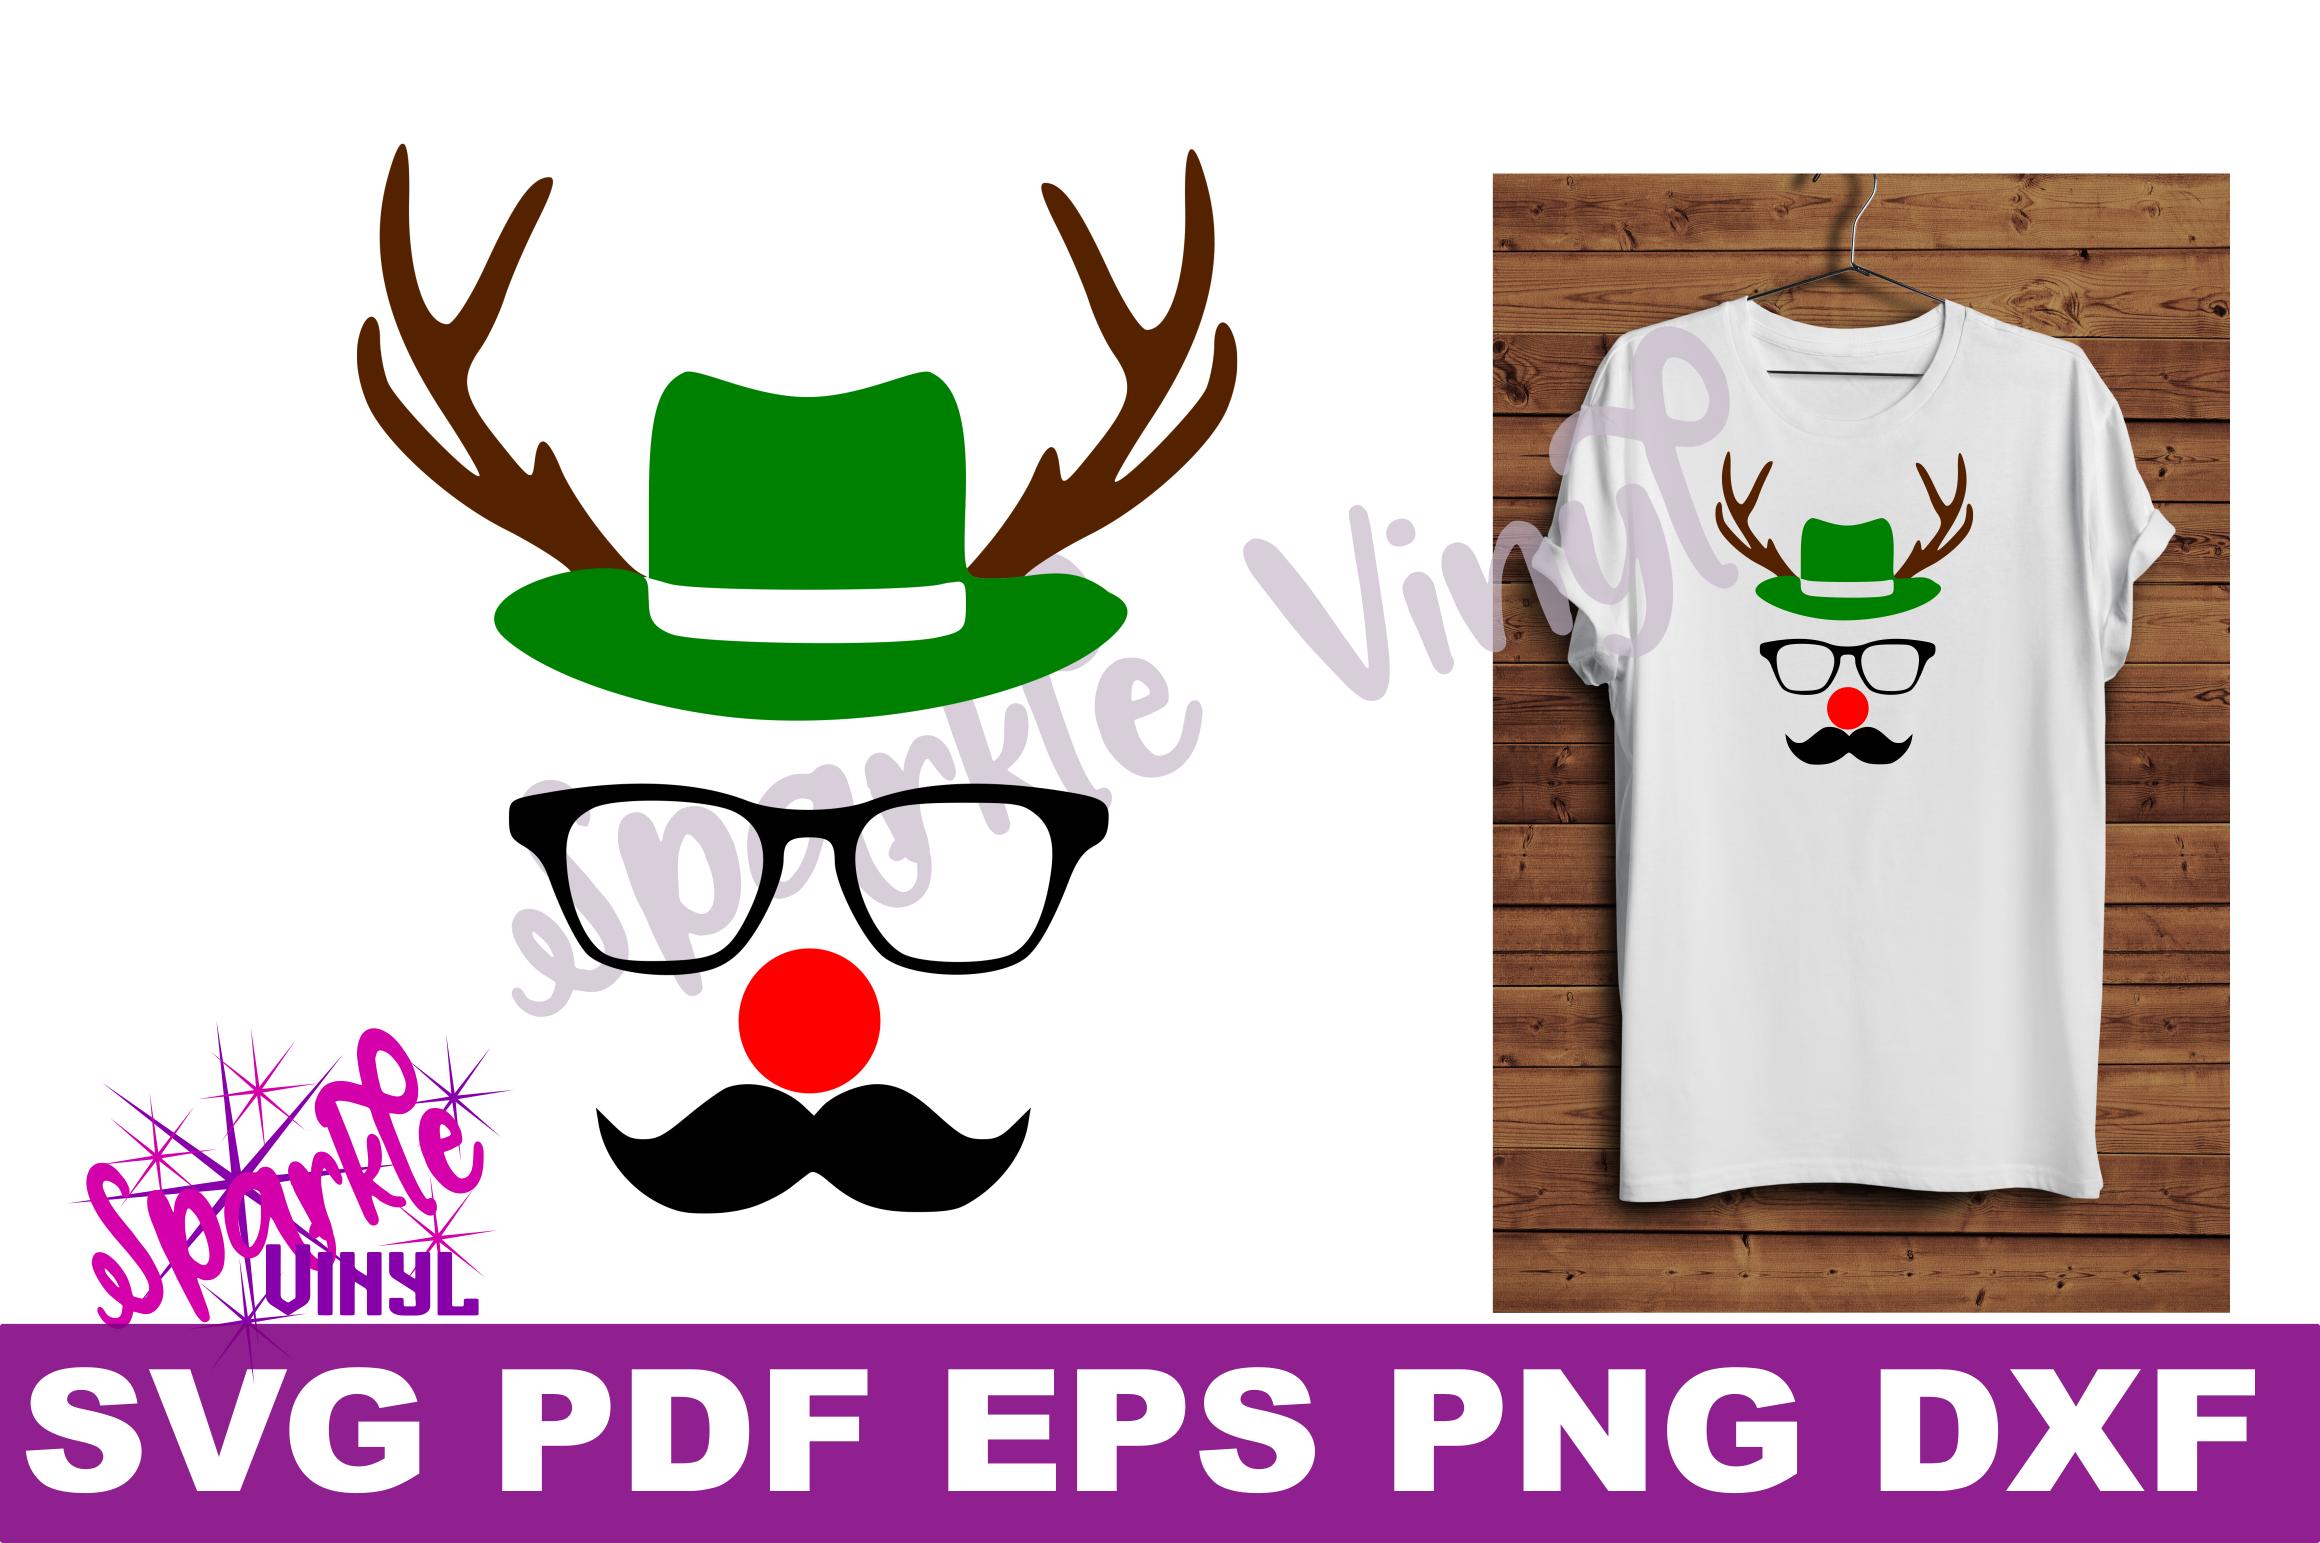 Svg Christmas Reindeer face ladies shirt tshirt outfit with hat glasses mustache red nose antlers svg files for cricut silhouette printable example image 2